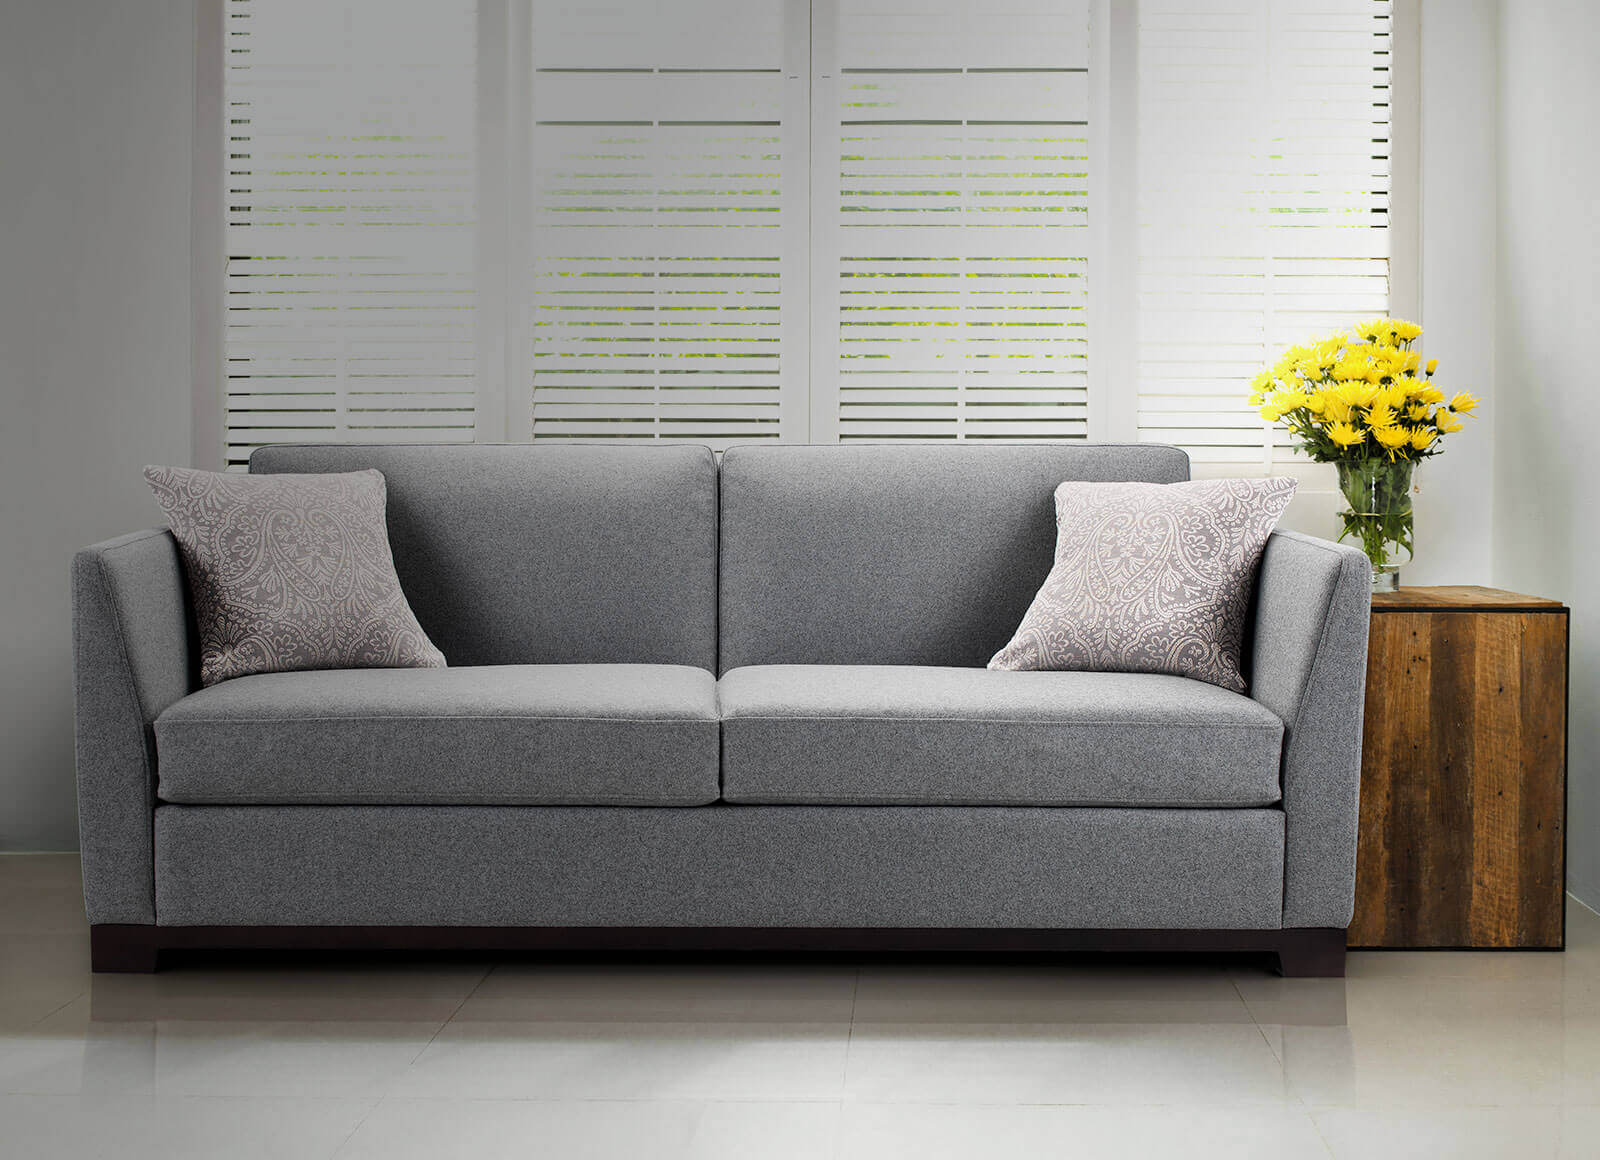 Sofa Beds For For Daily Use Comfort Day And Night